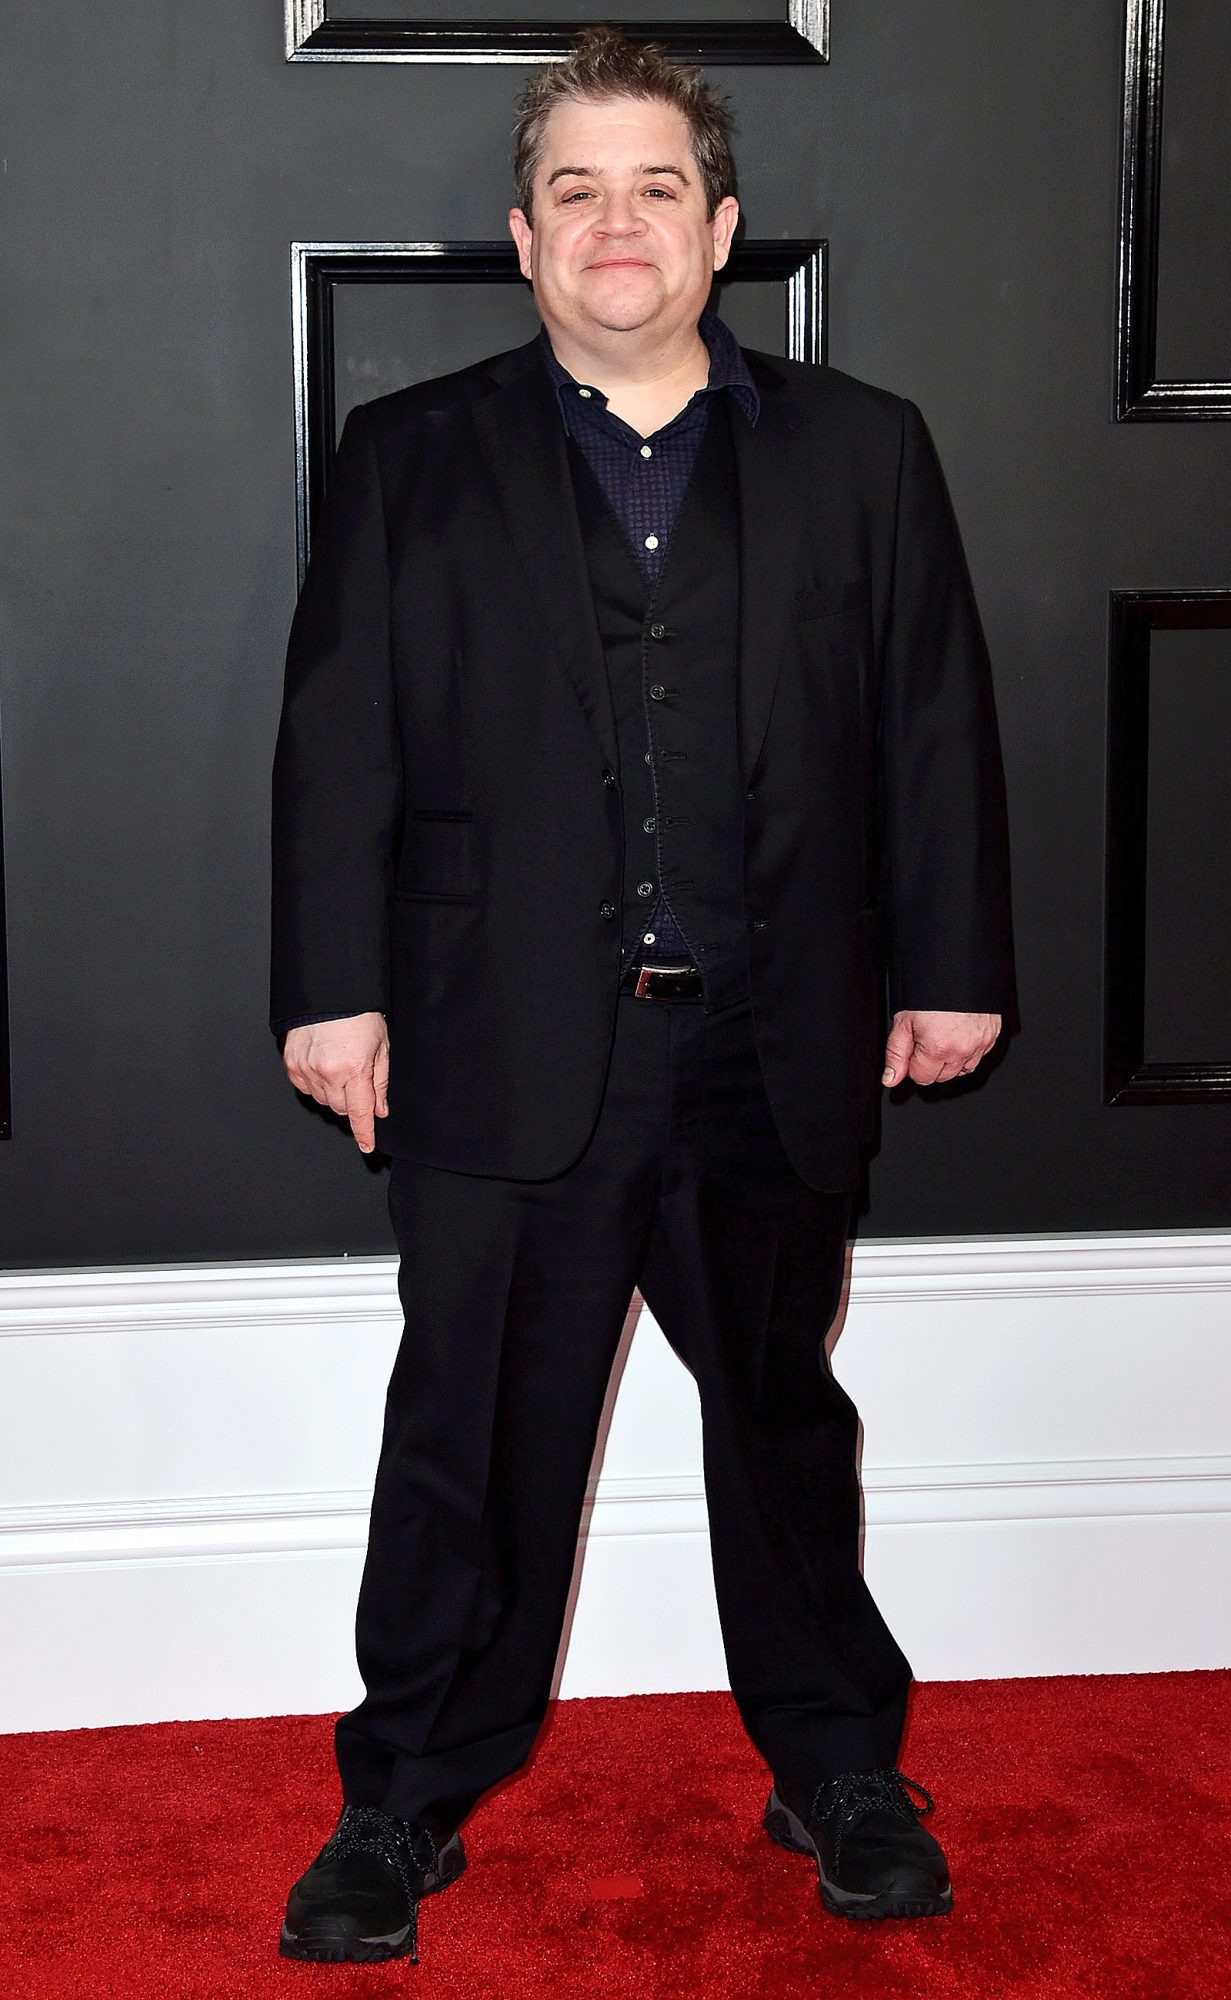 59th Annual Grammy Awards - Arrivals